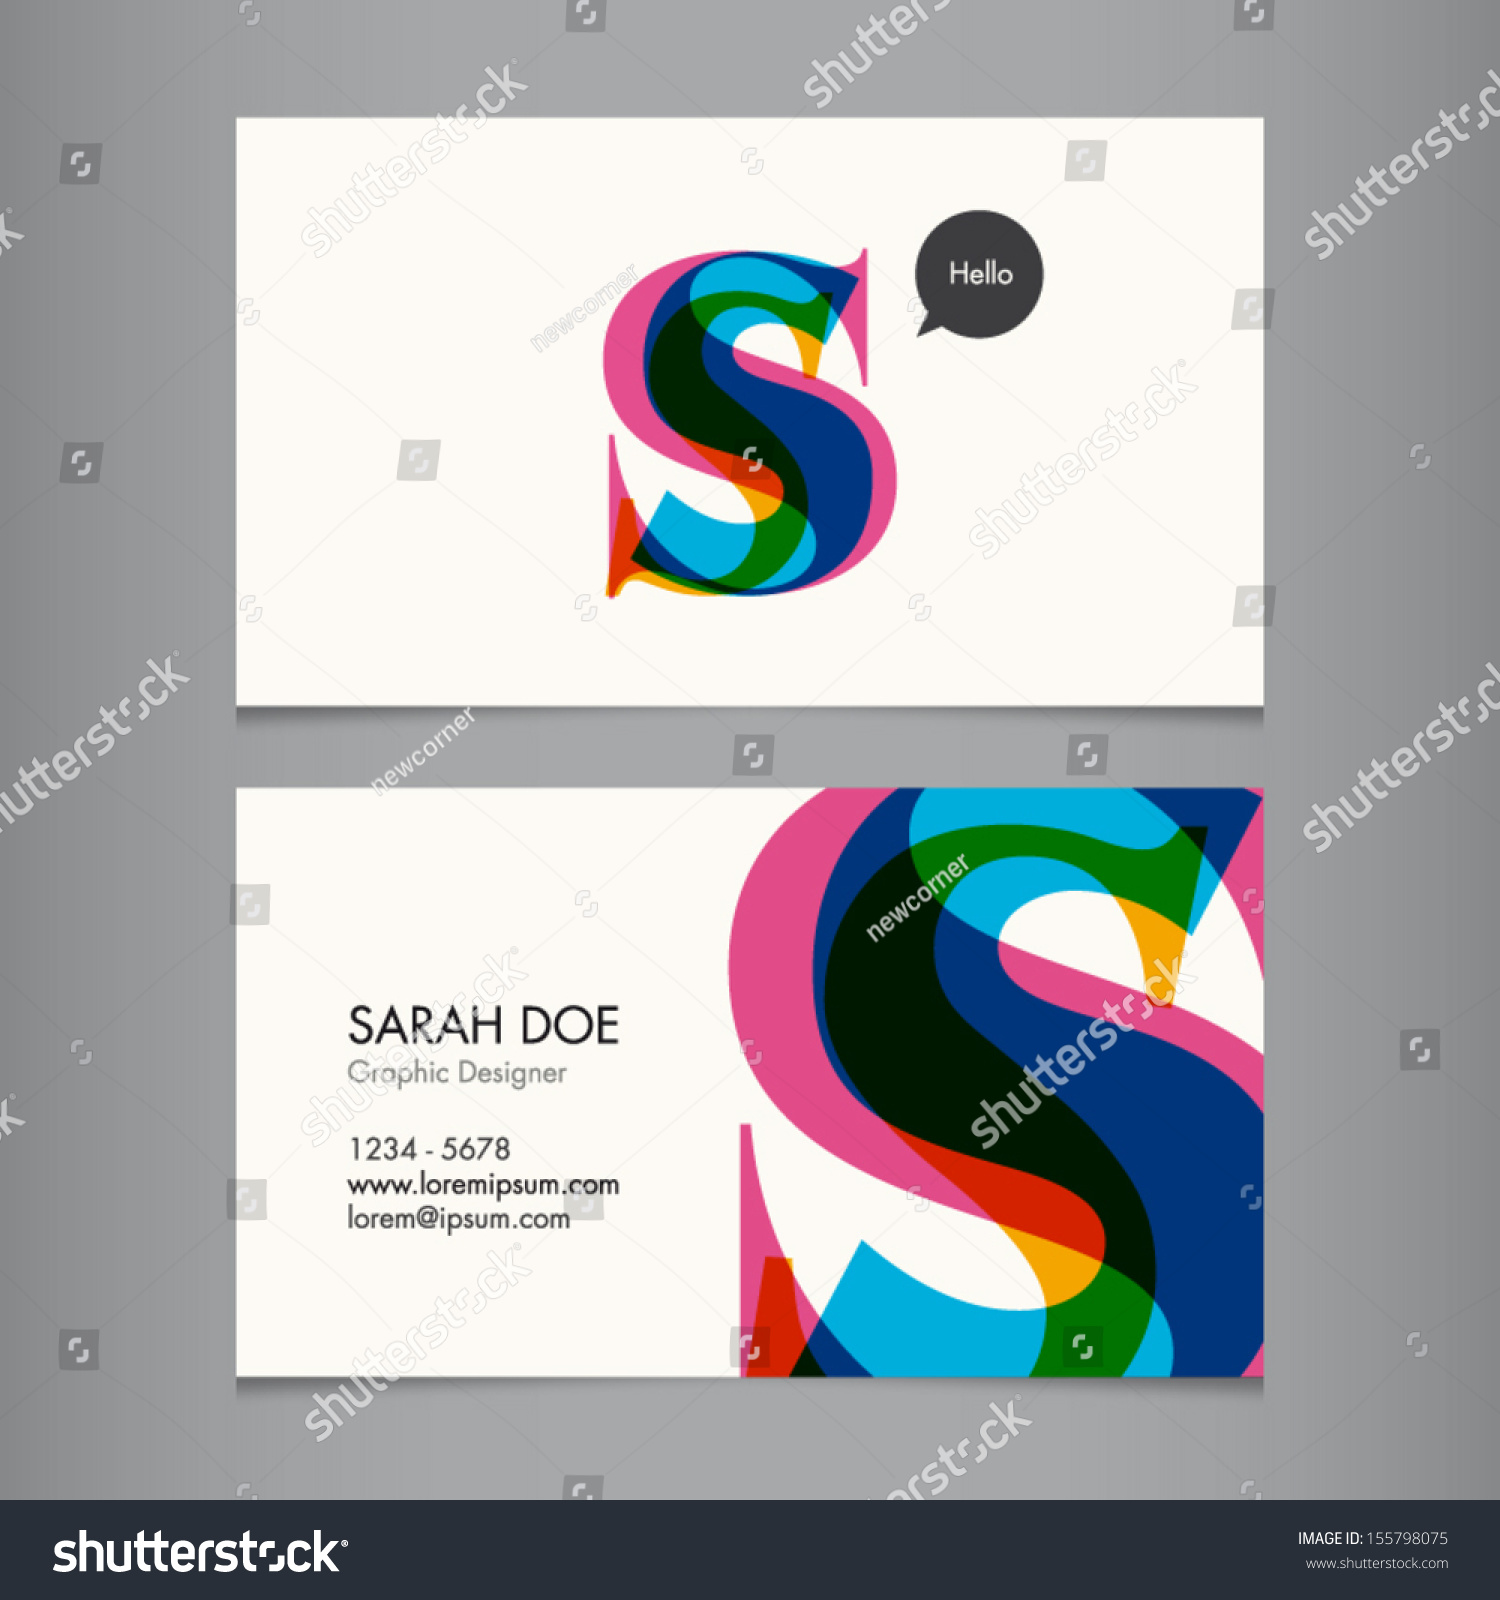 Business card template letter s stock vector hd royalty free business card template letter s thecheapjerseys Gallery